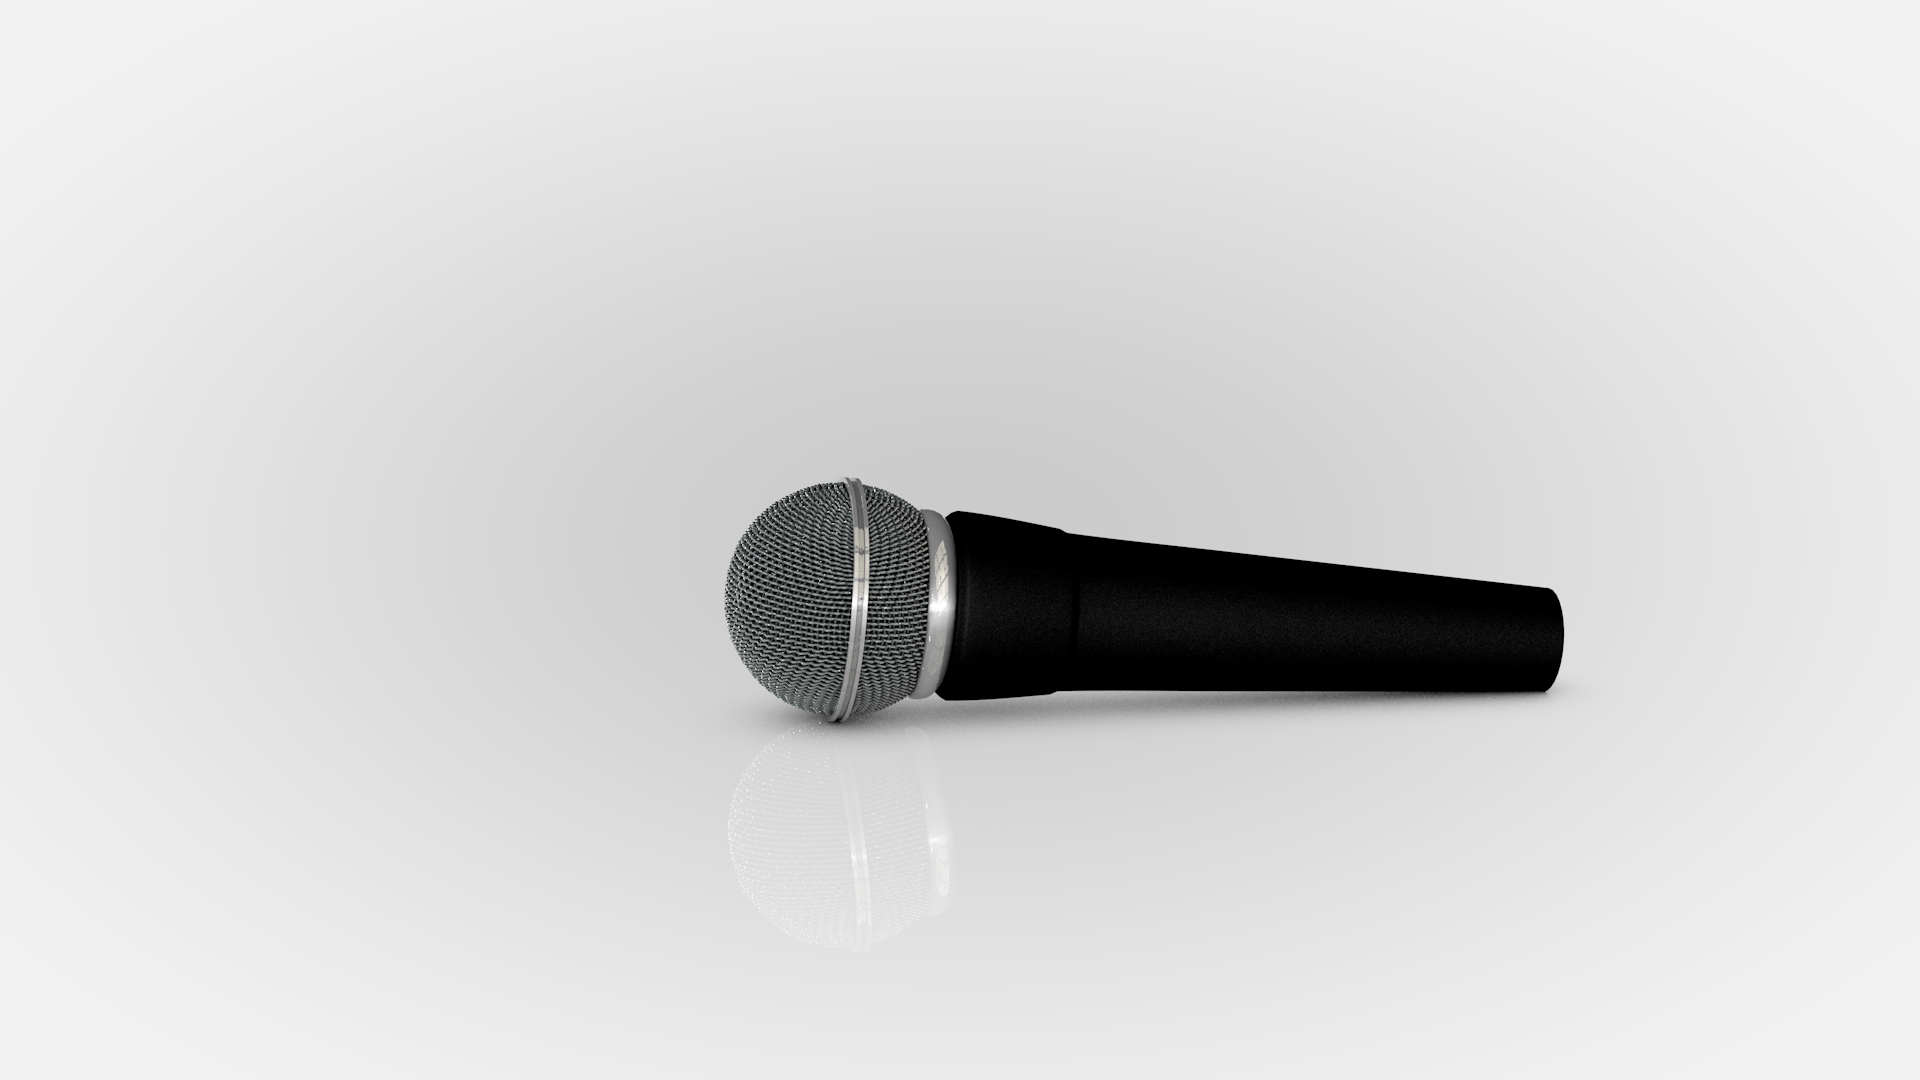 Microphone_preview0090